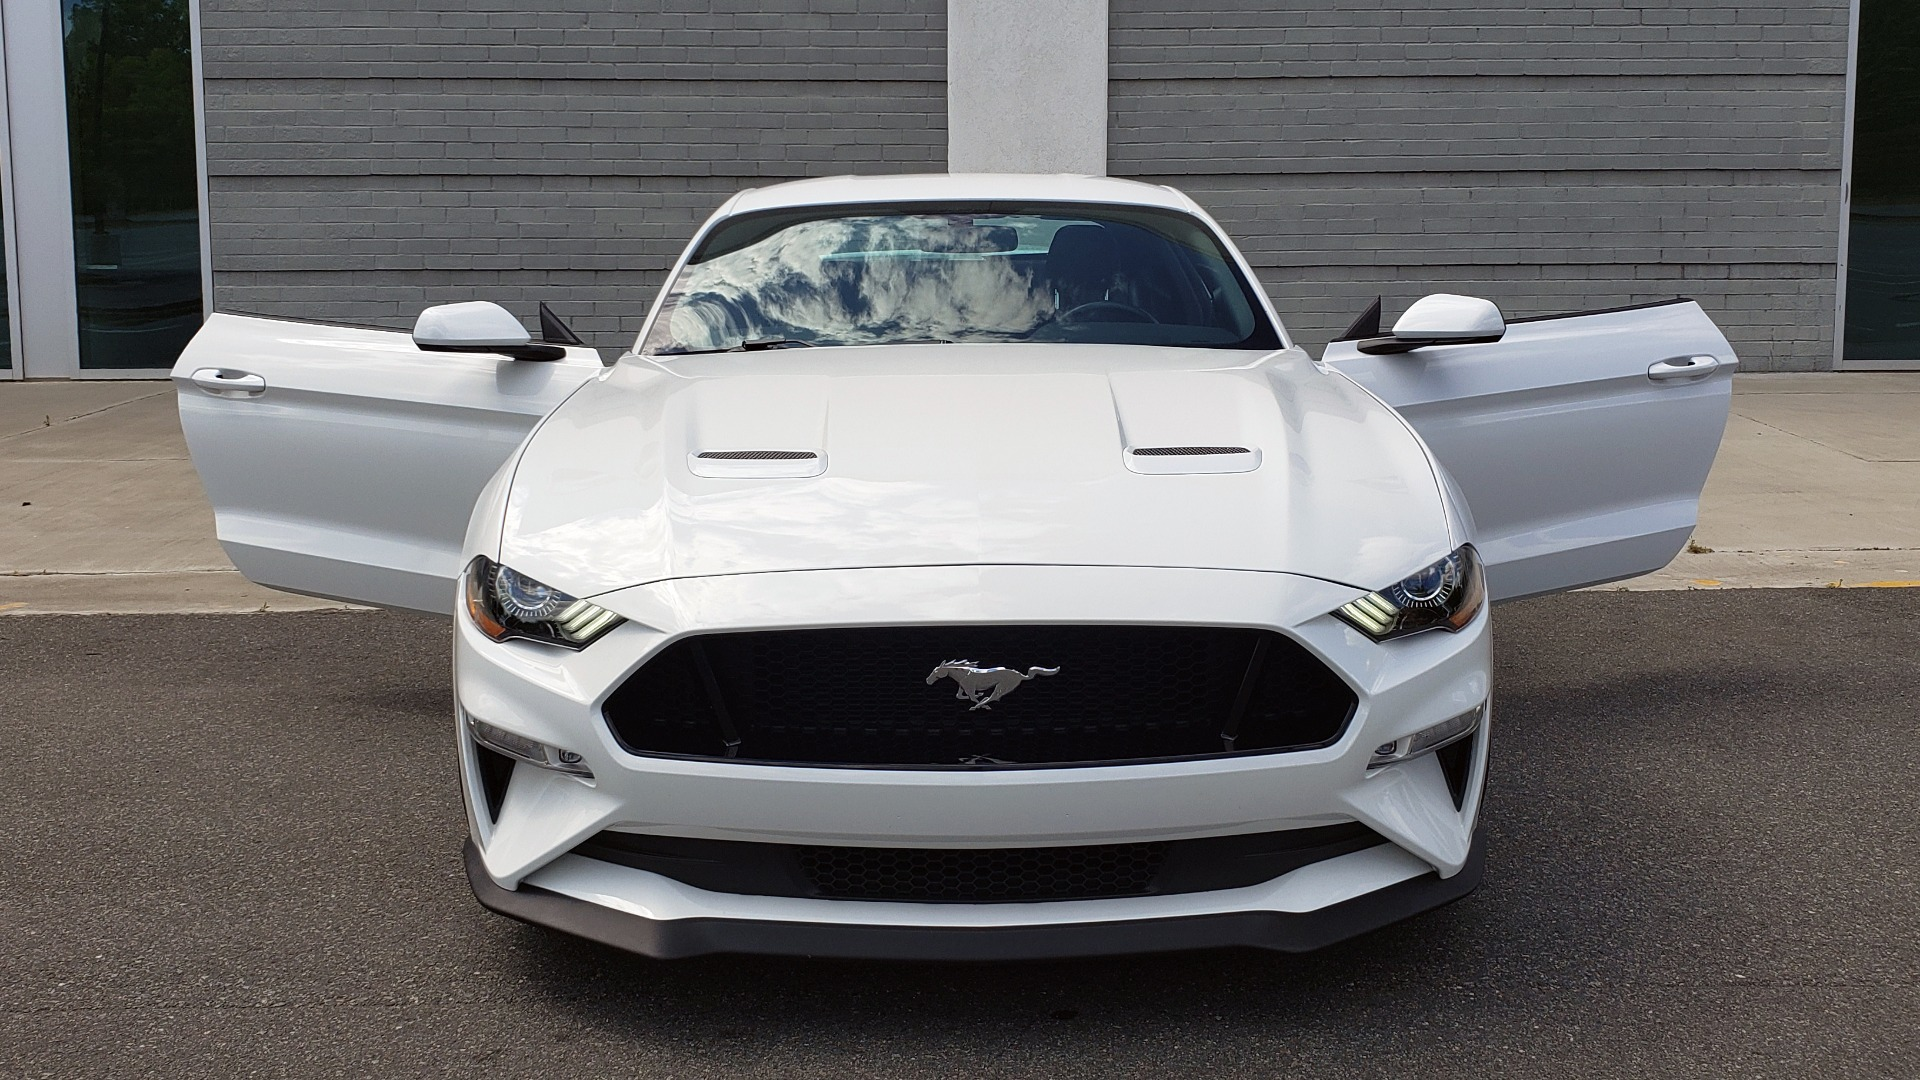 Used 2018 Ford MUSTANG GT COUPE / 5.0L V8 / AUTO / PERF PKG / REARVIEW / 19IN WHLS for sale Sold at Formula Imports in Charlotte NC 28227 21